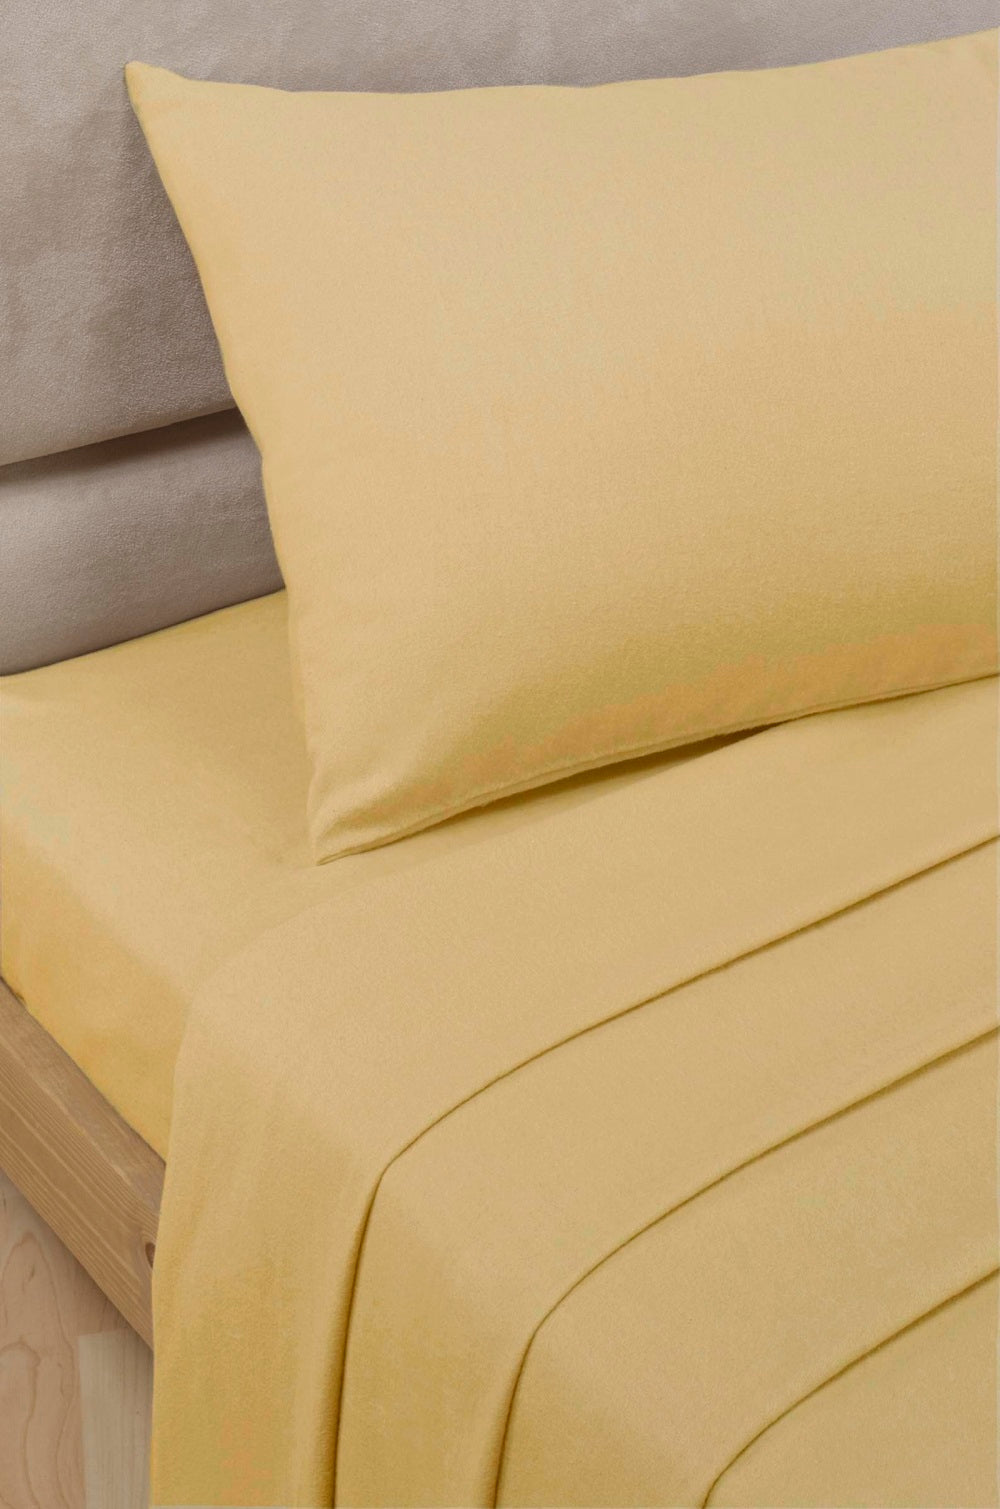 Ochre Percale/Polycotton Fitted Sheet 180 TC by Rapport